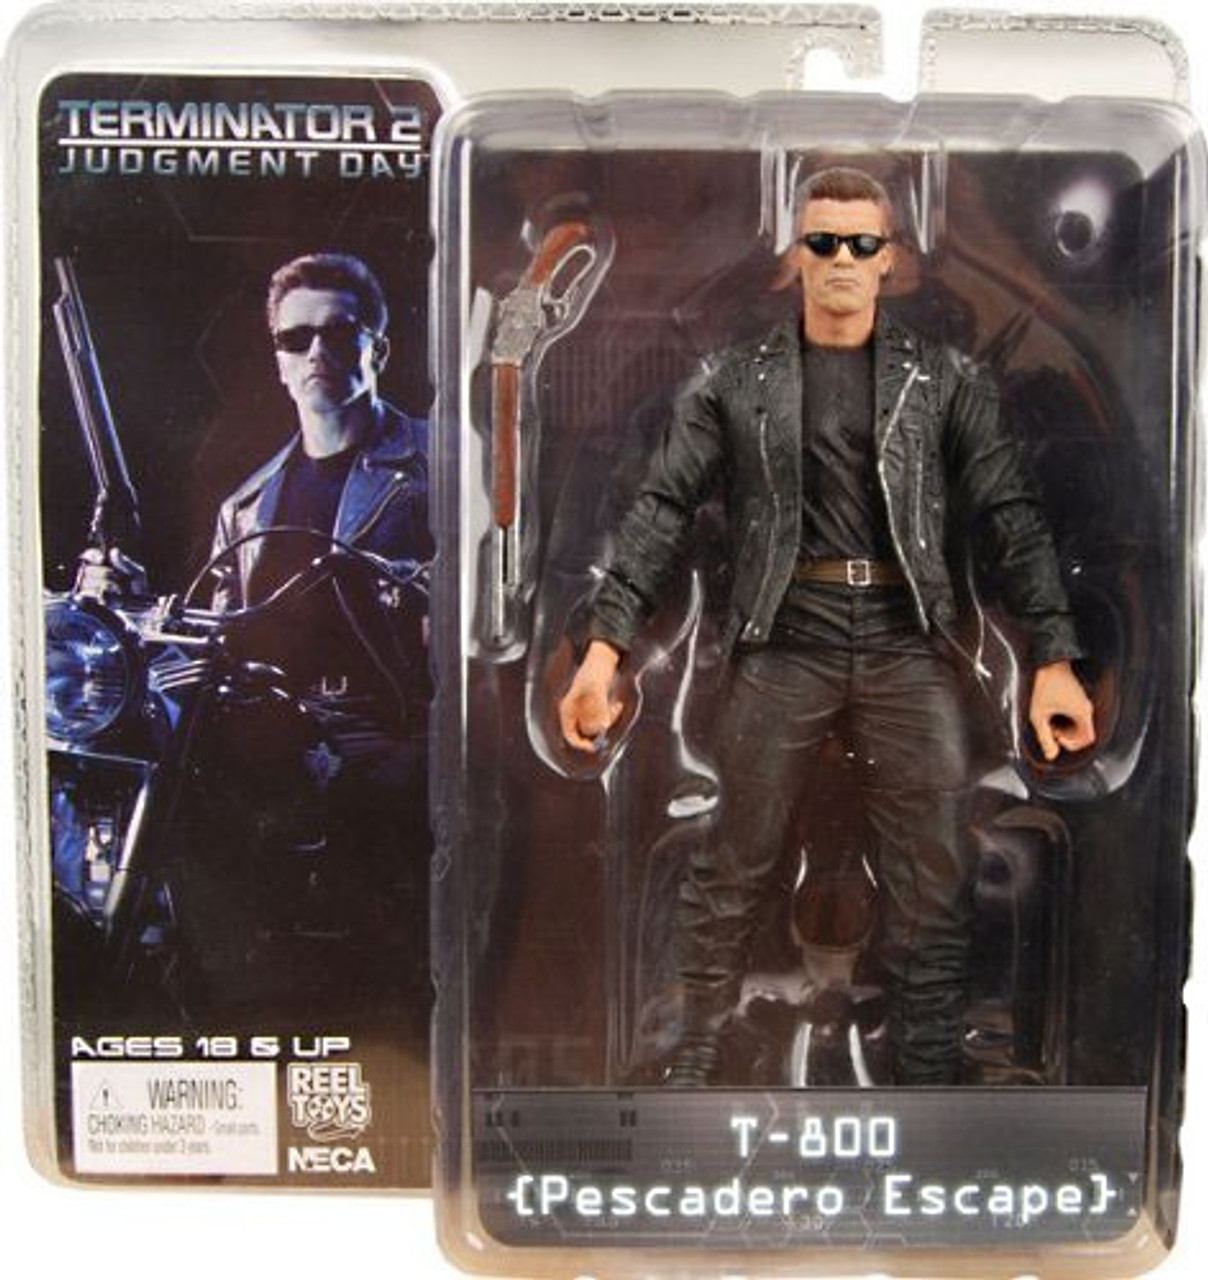 NECA Terminator 2 Judgment Day Series 1 T-800 Action Figure [Pescadero Escape]